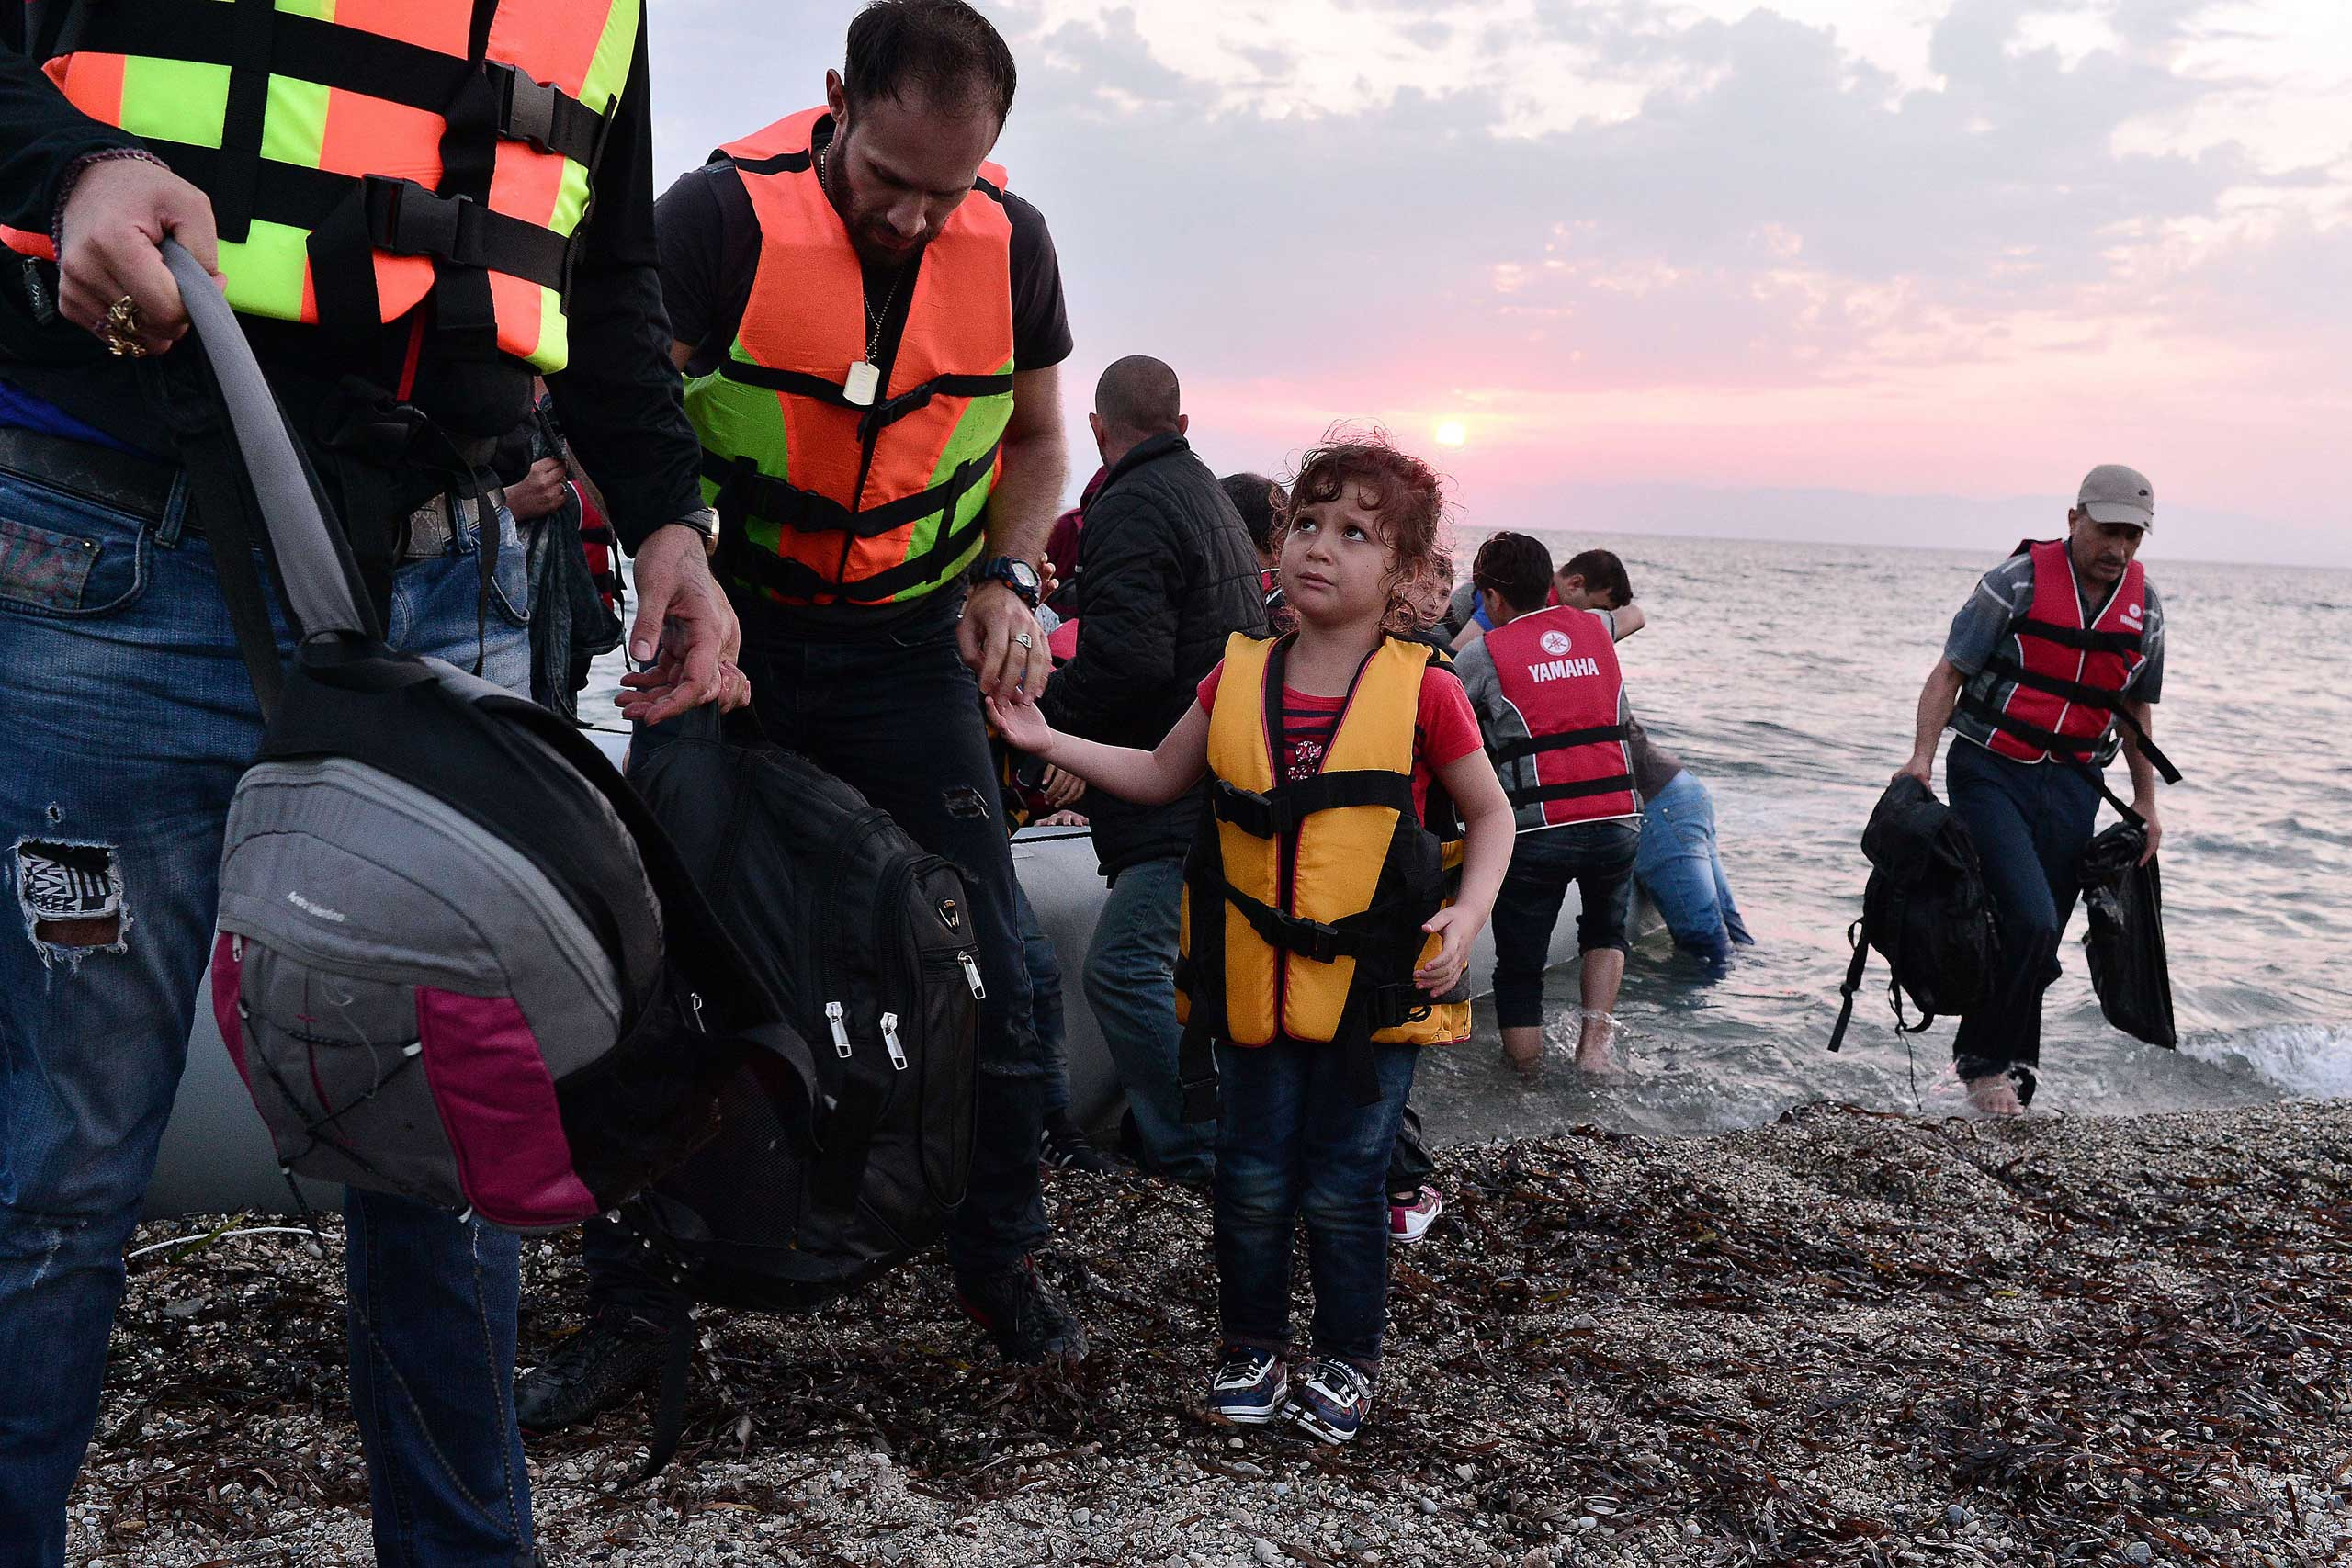 Syrians disembark on the island of Lesbos, Greece, early on June 18, 2015.